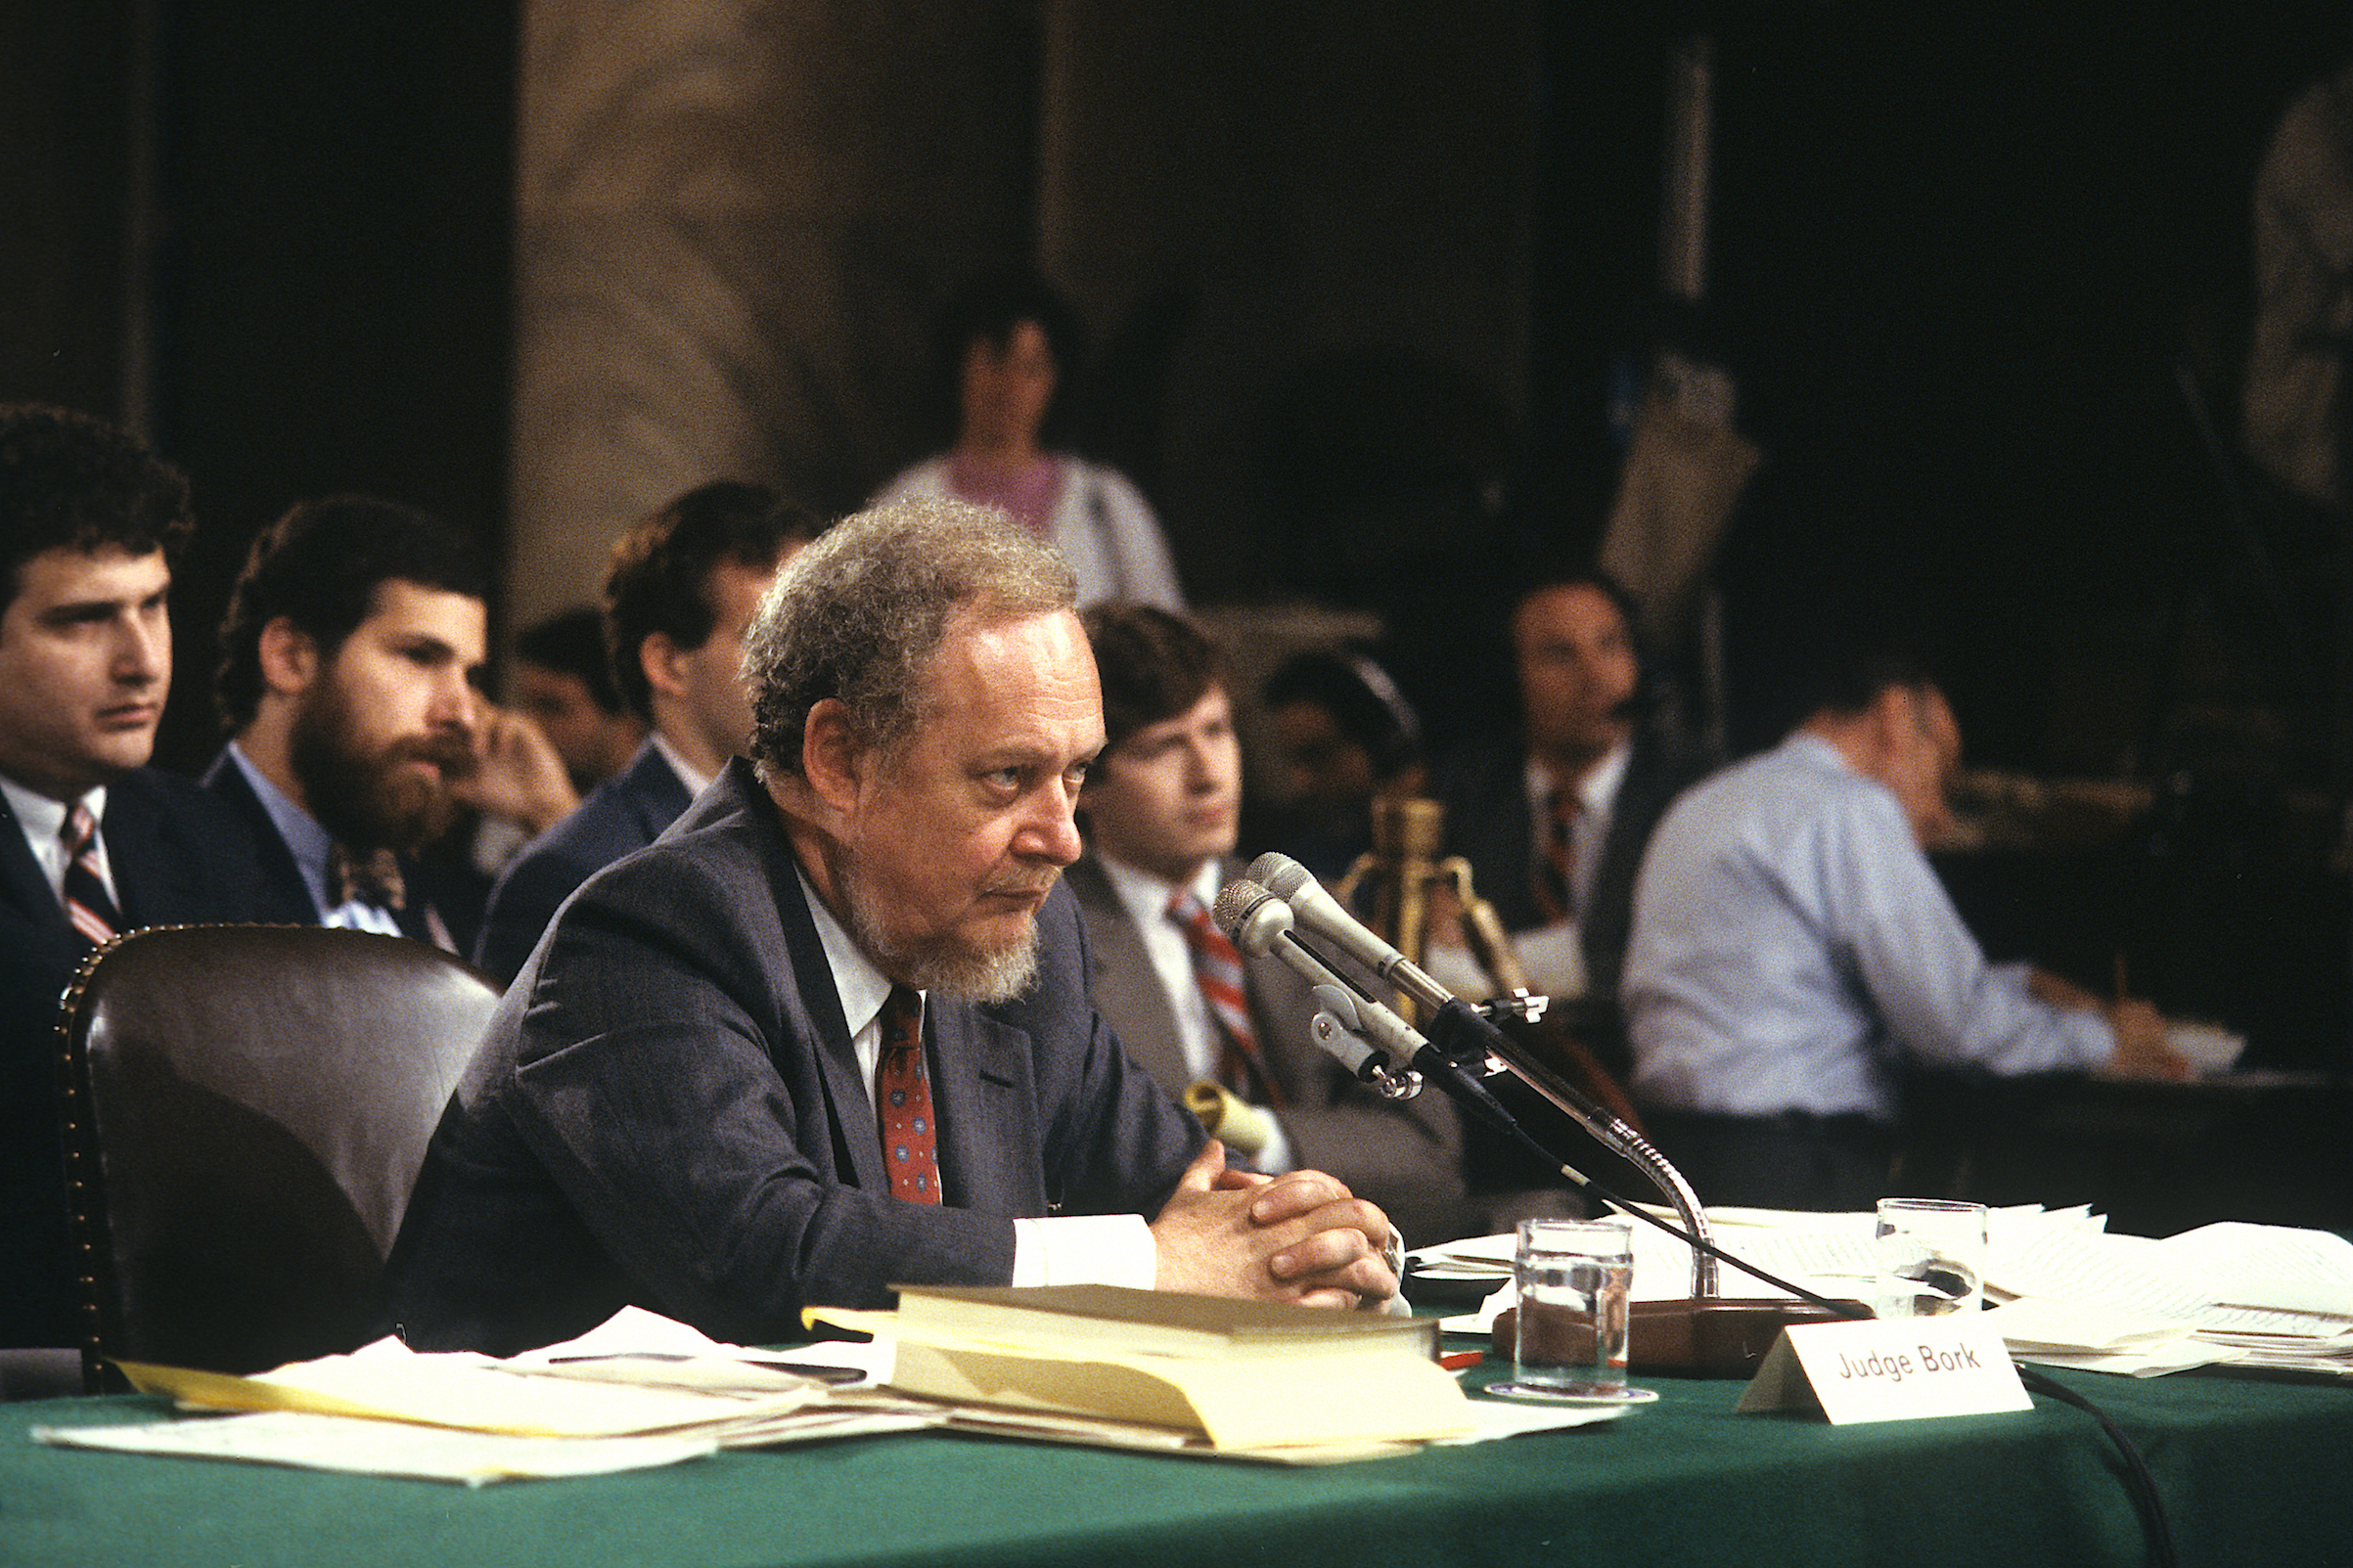 American jurist Judge Robert Bork (1927 - 2012) testifies before the Senate Judiciary Committee on the final day of his Supreme Court confirmation hearing, Washington D.C., Sept. 20, 1987.